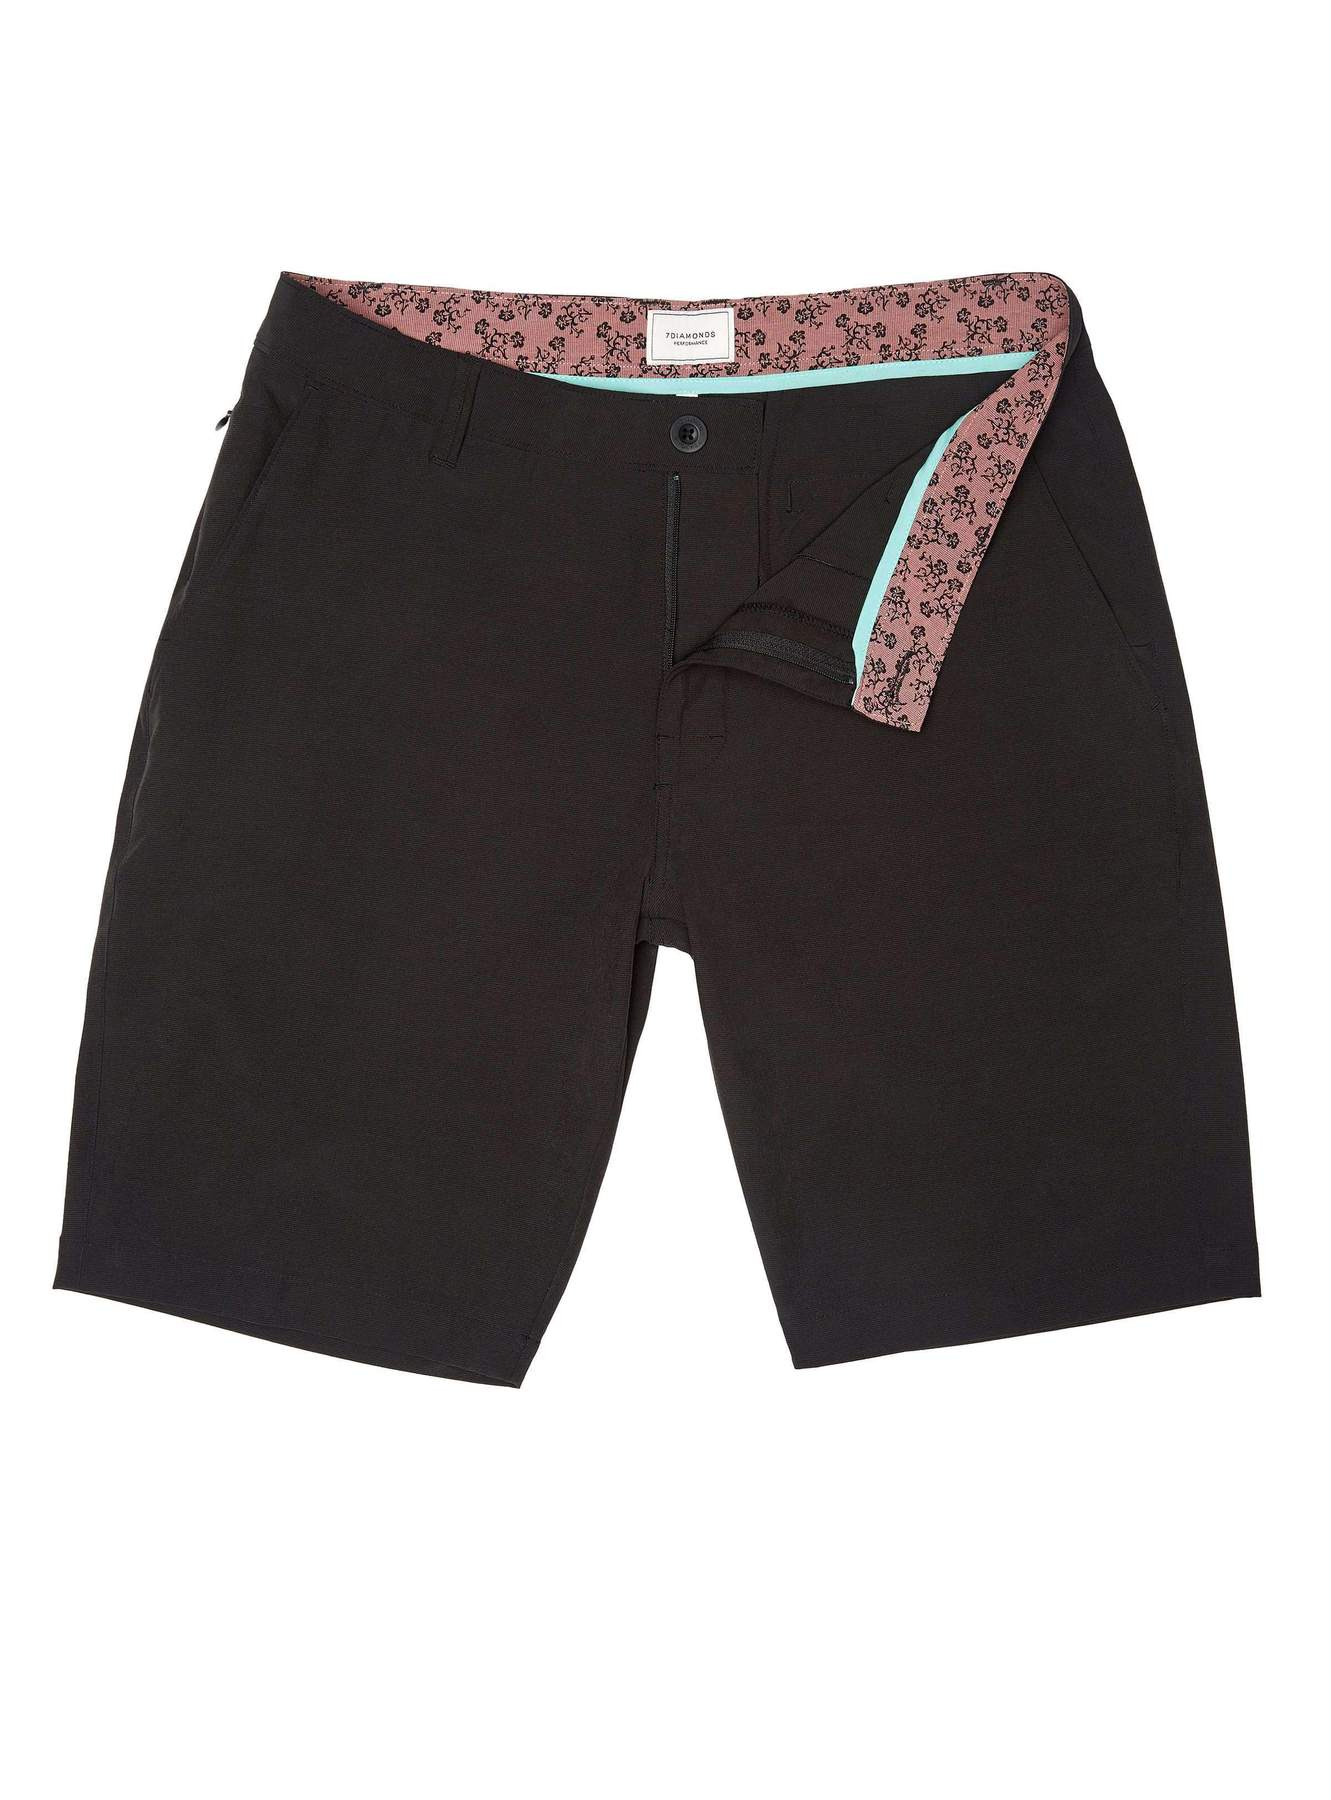 dynamichybrid-shorts7diamonds7diamonds-16506412_1331x1800.jpg